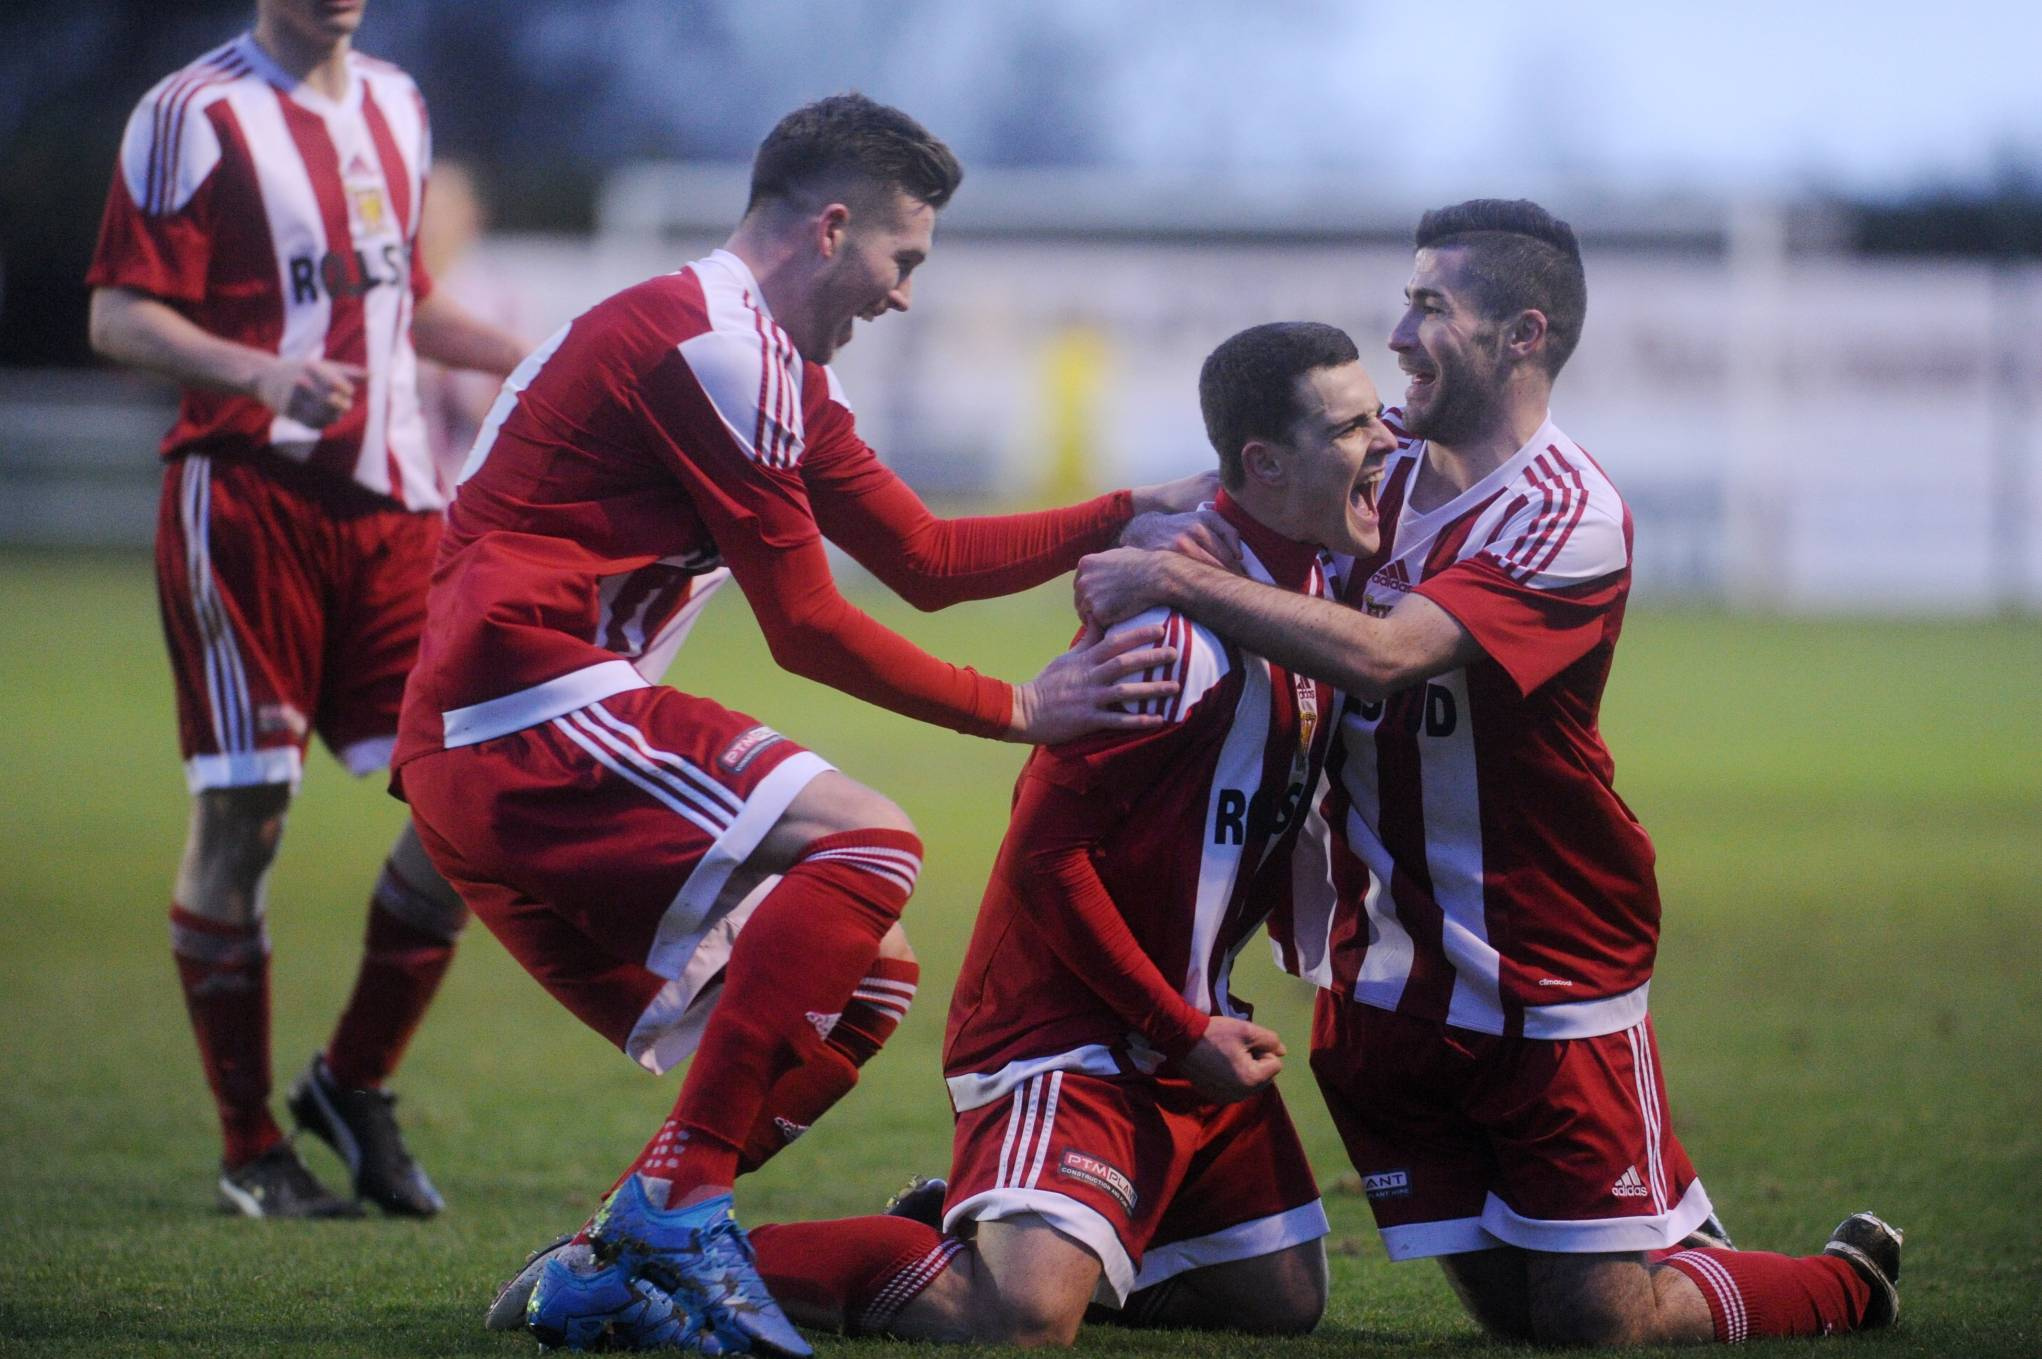 Jamie Masson, Stuart Barbour and Cammy Keith celebrating Barbour's first goal for Formartine.